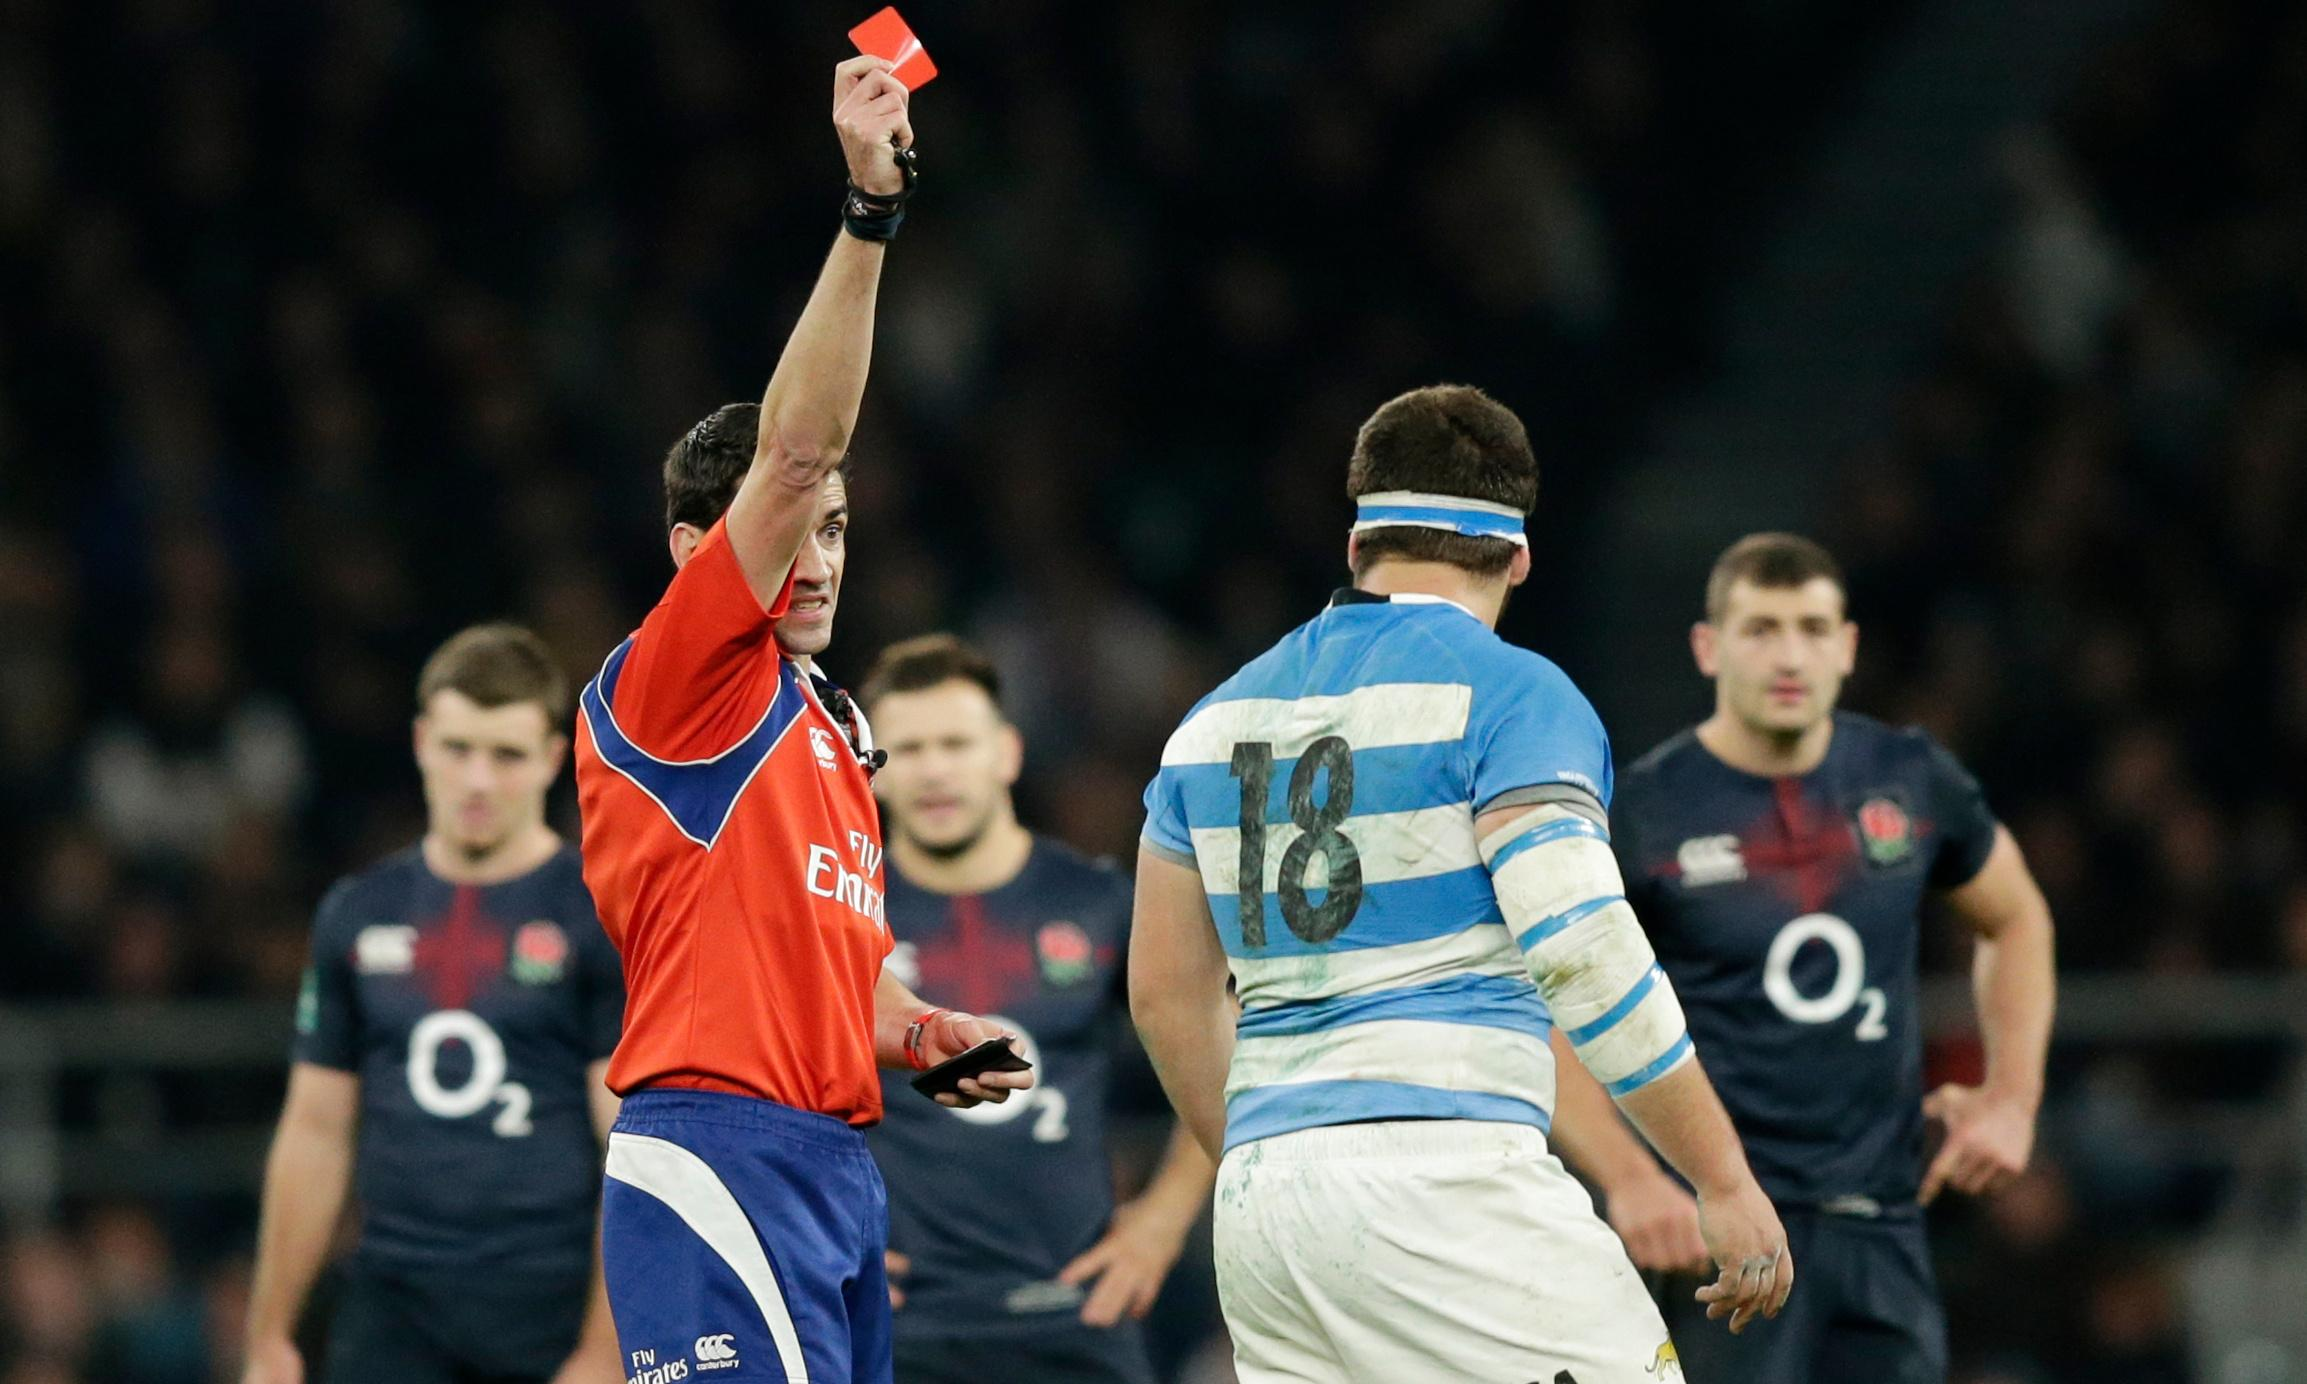 World Cup referees will not 'lay down a marker' with reds, says World Rugby